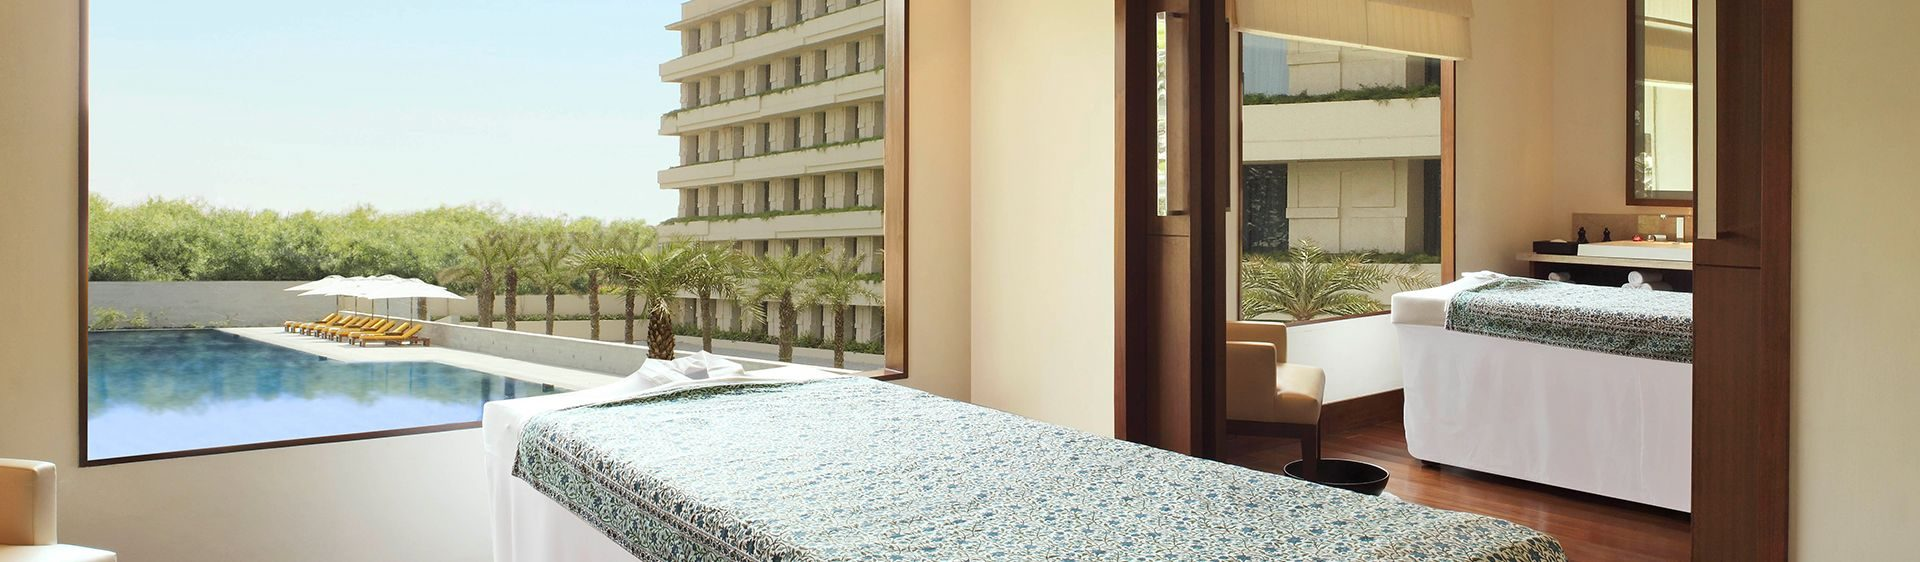 oberoi spa gurgaon